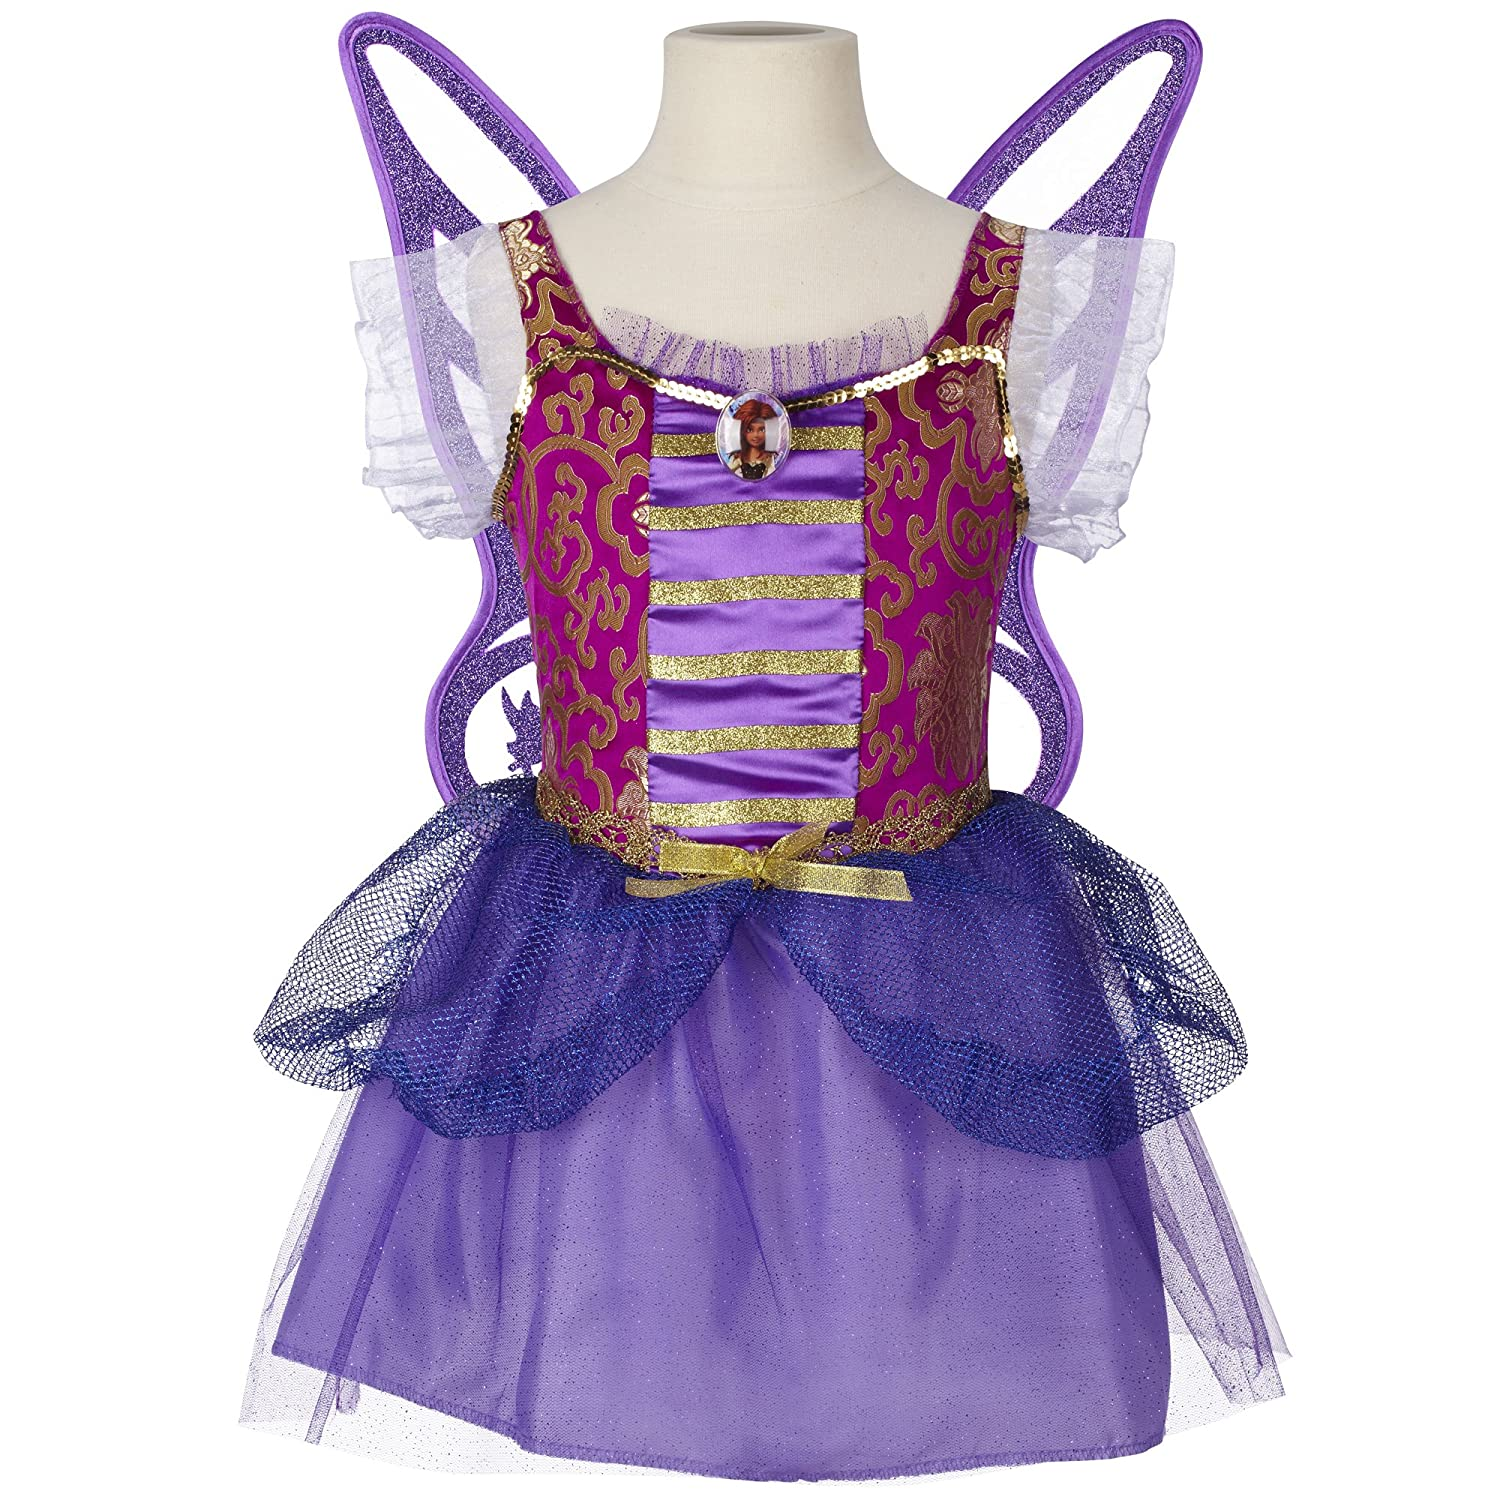 Disney Fairies Pixie Zarina Pirate Dress